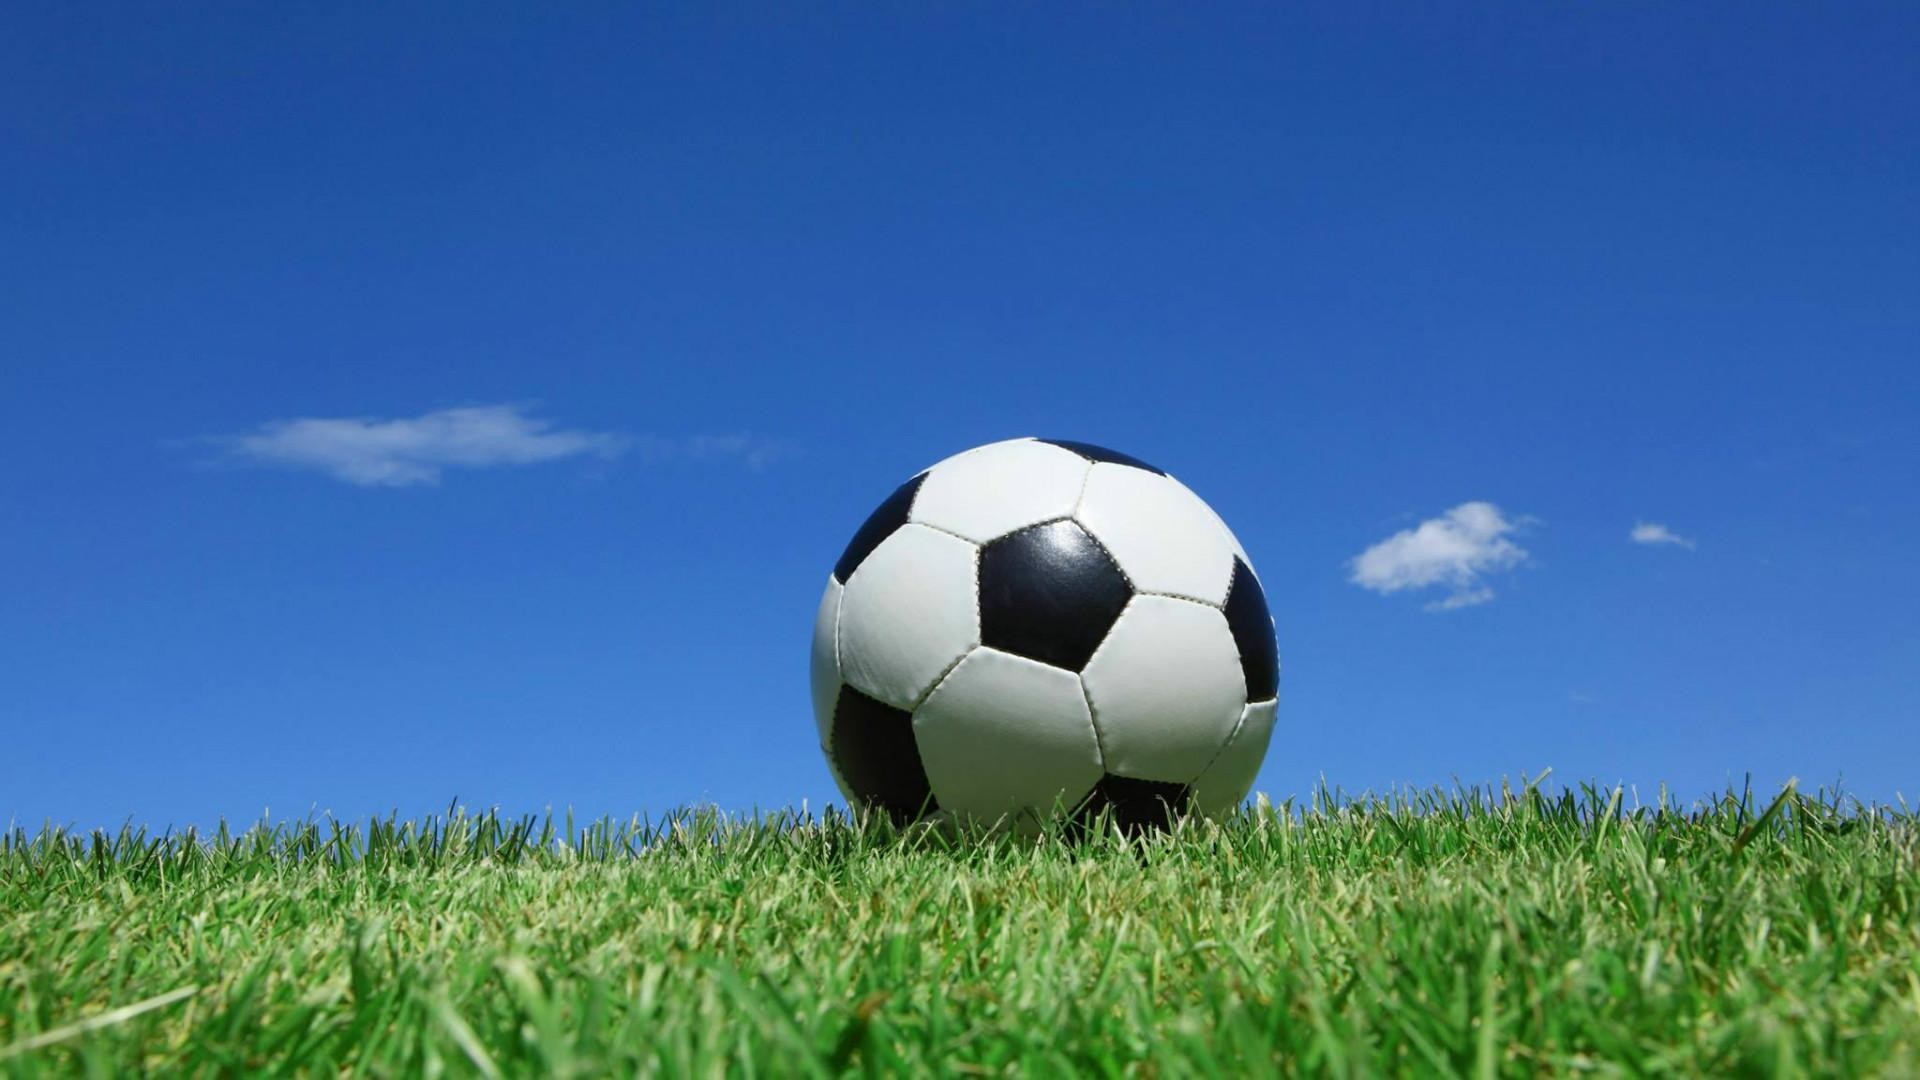 Soccer Background Images 44 Pictures